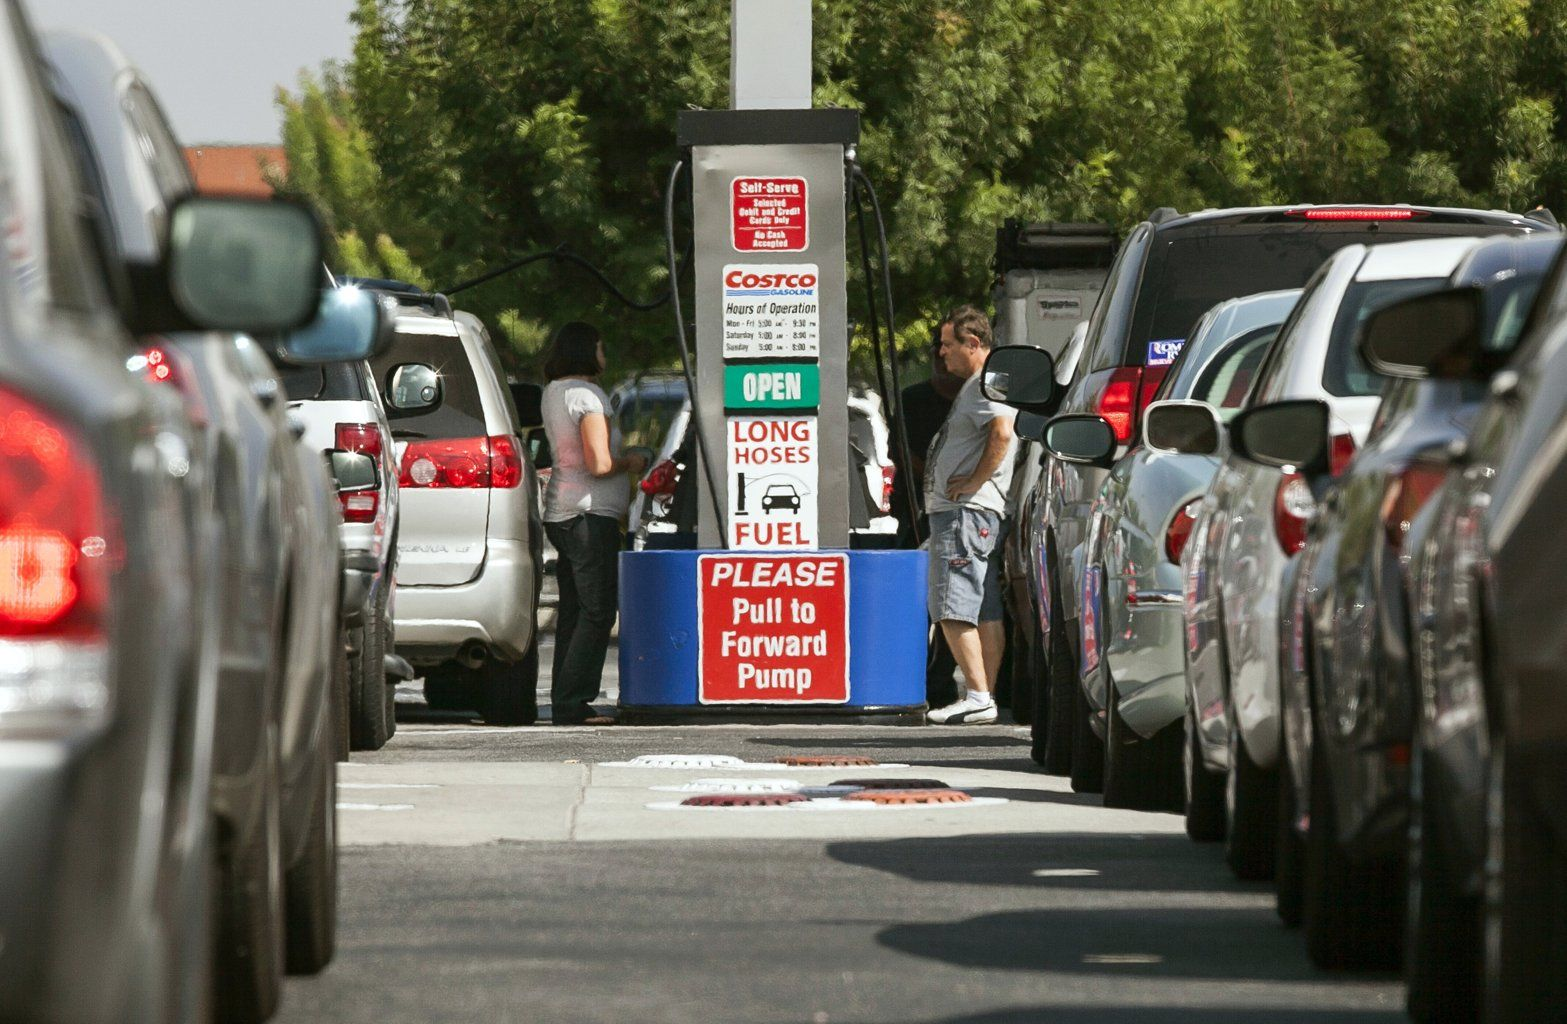 Calif Gas Prices Hit All Time High Gas Prices Colchester Gas Station